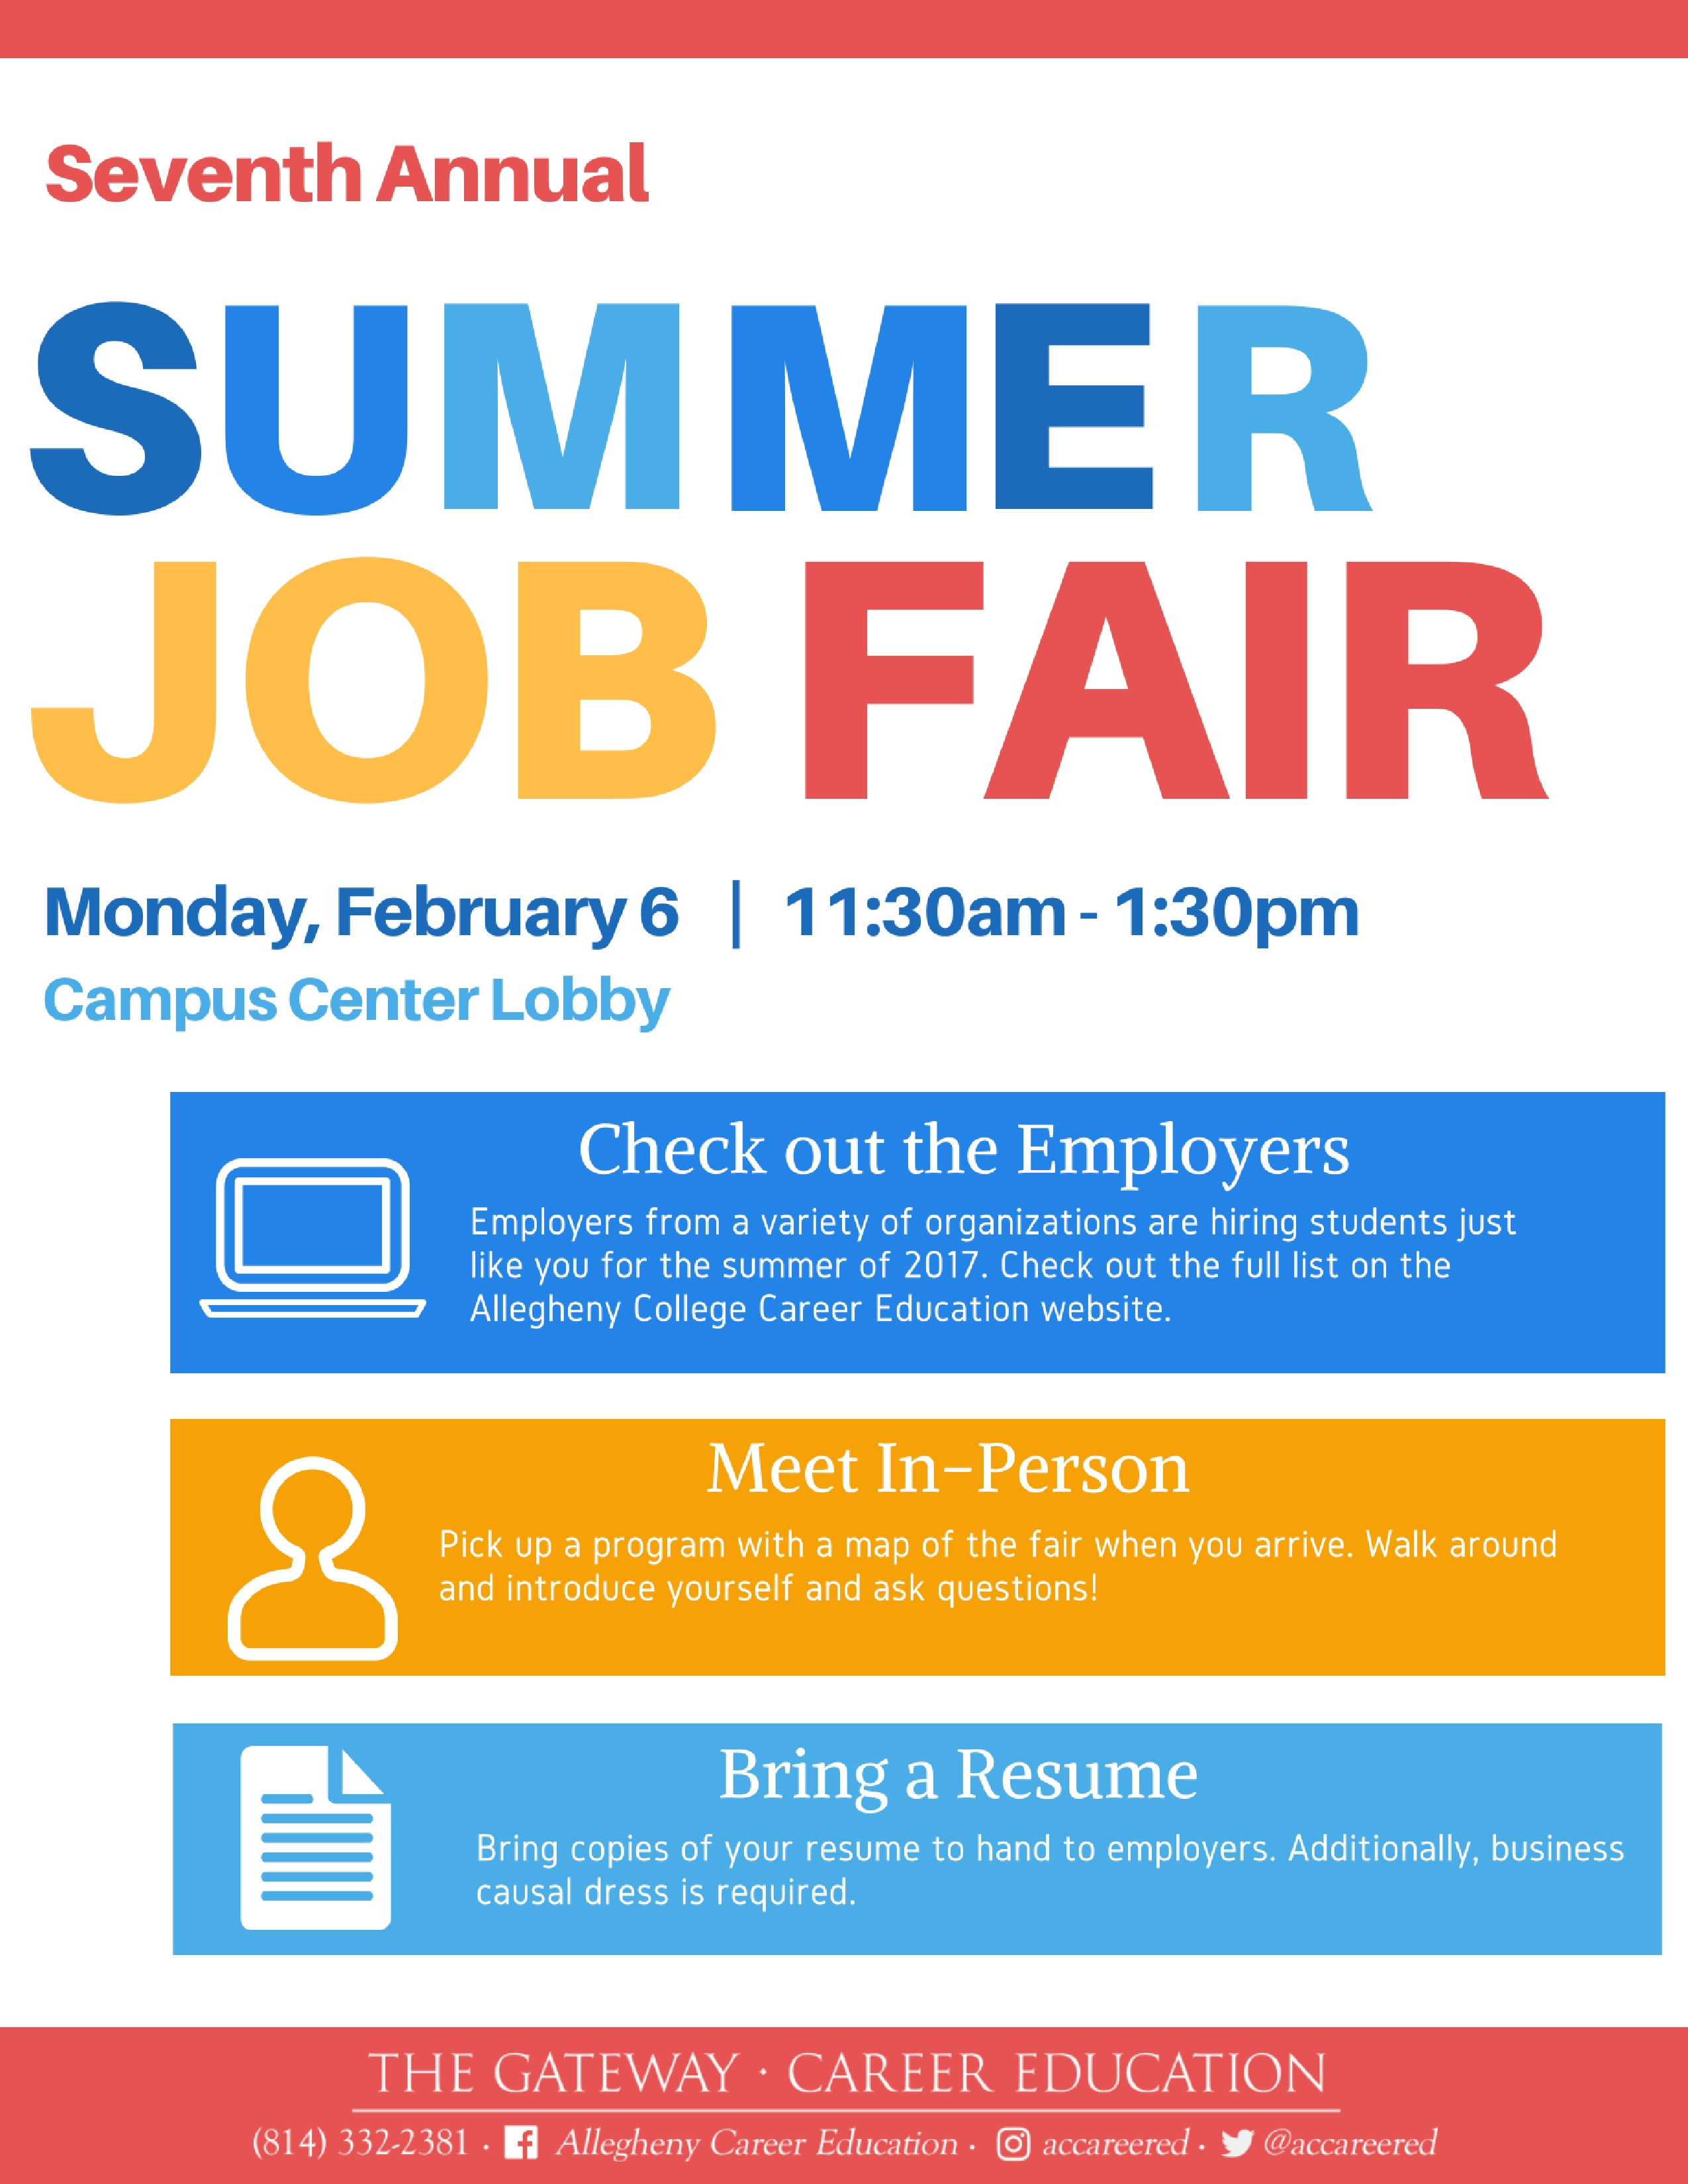 summer job fairs career education allegheny college summer job fair